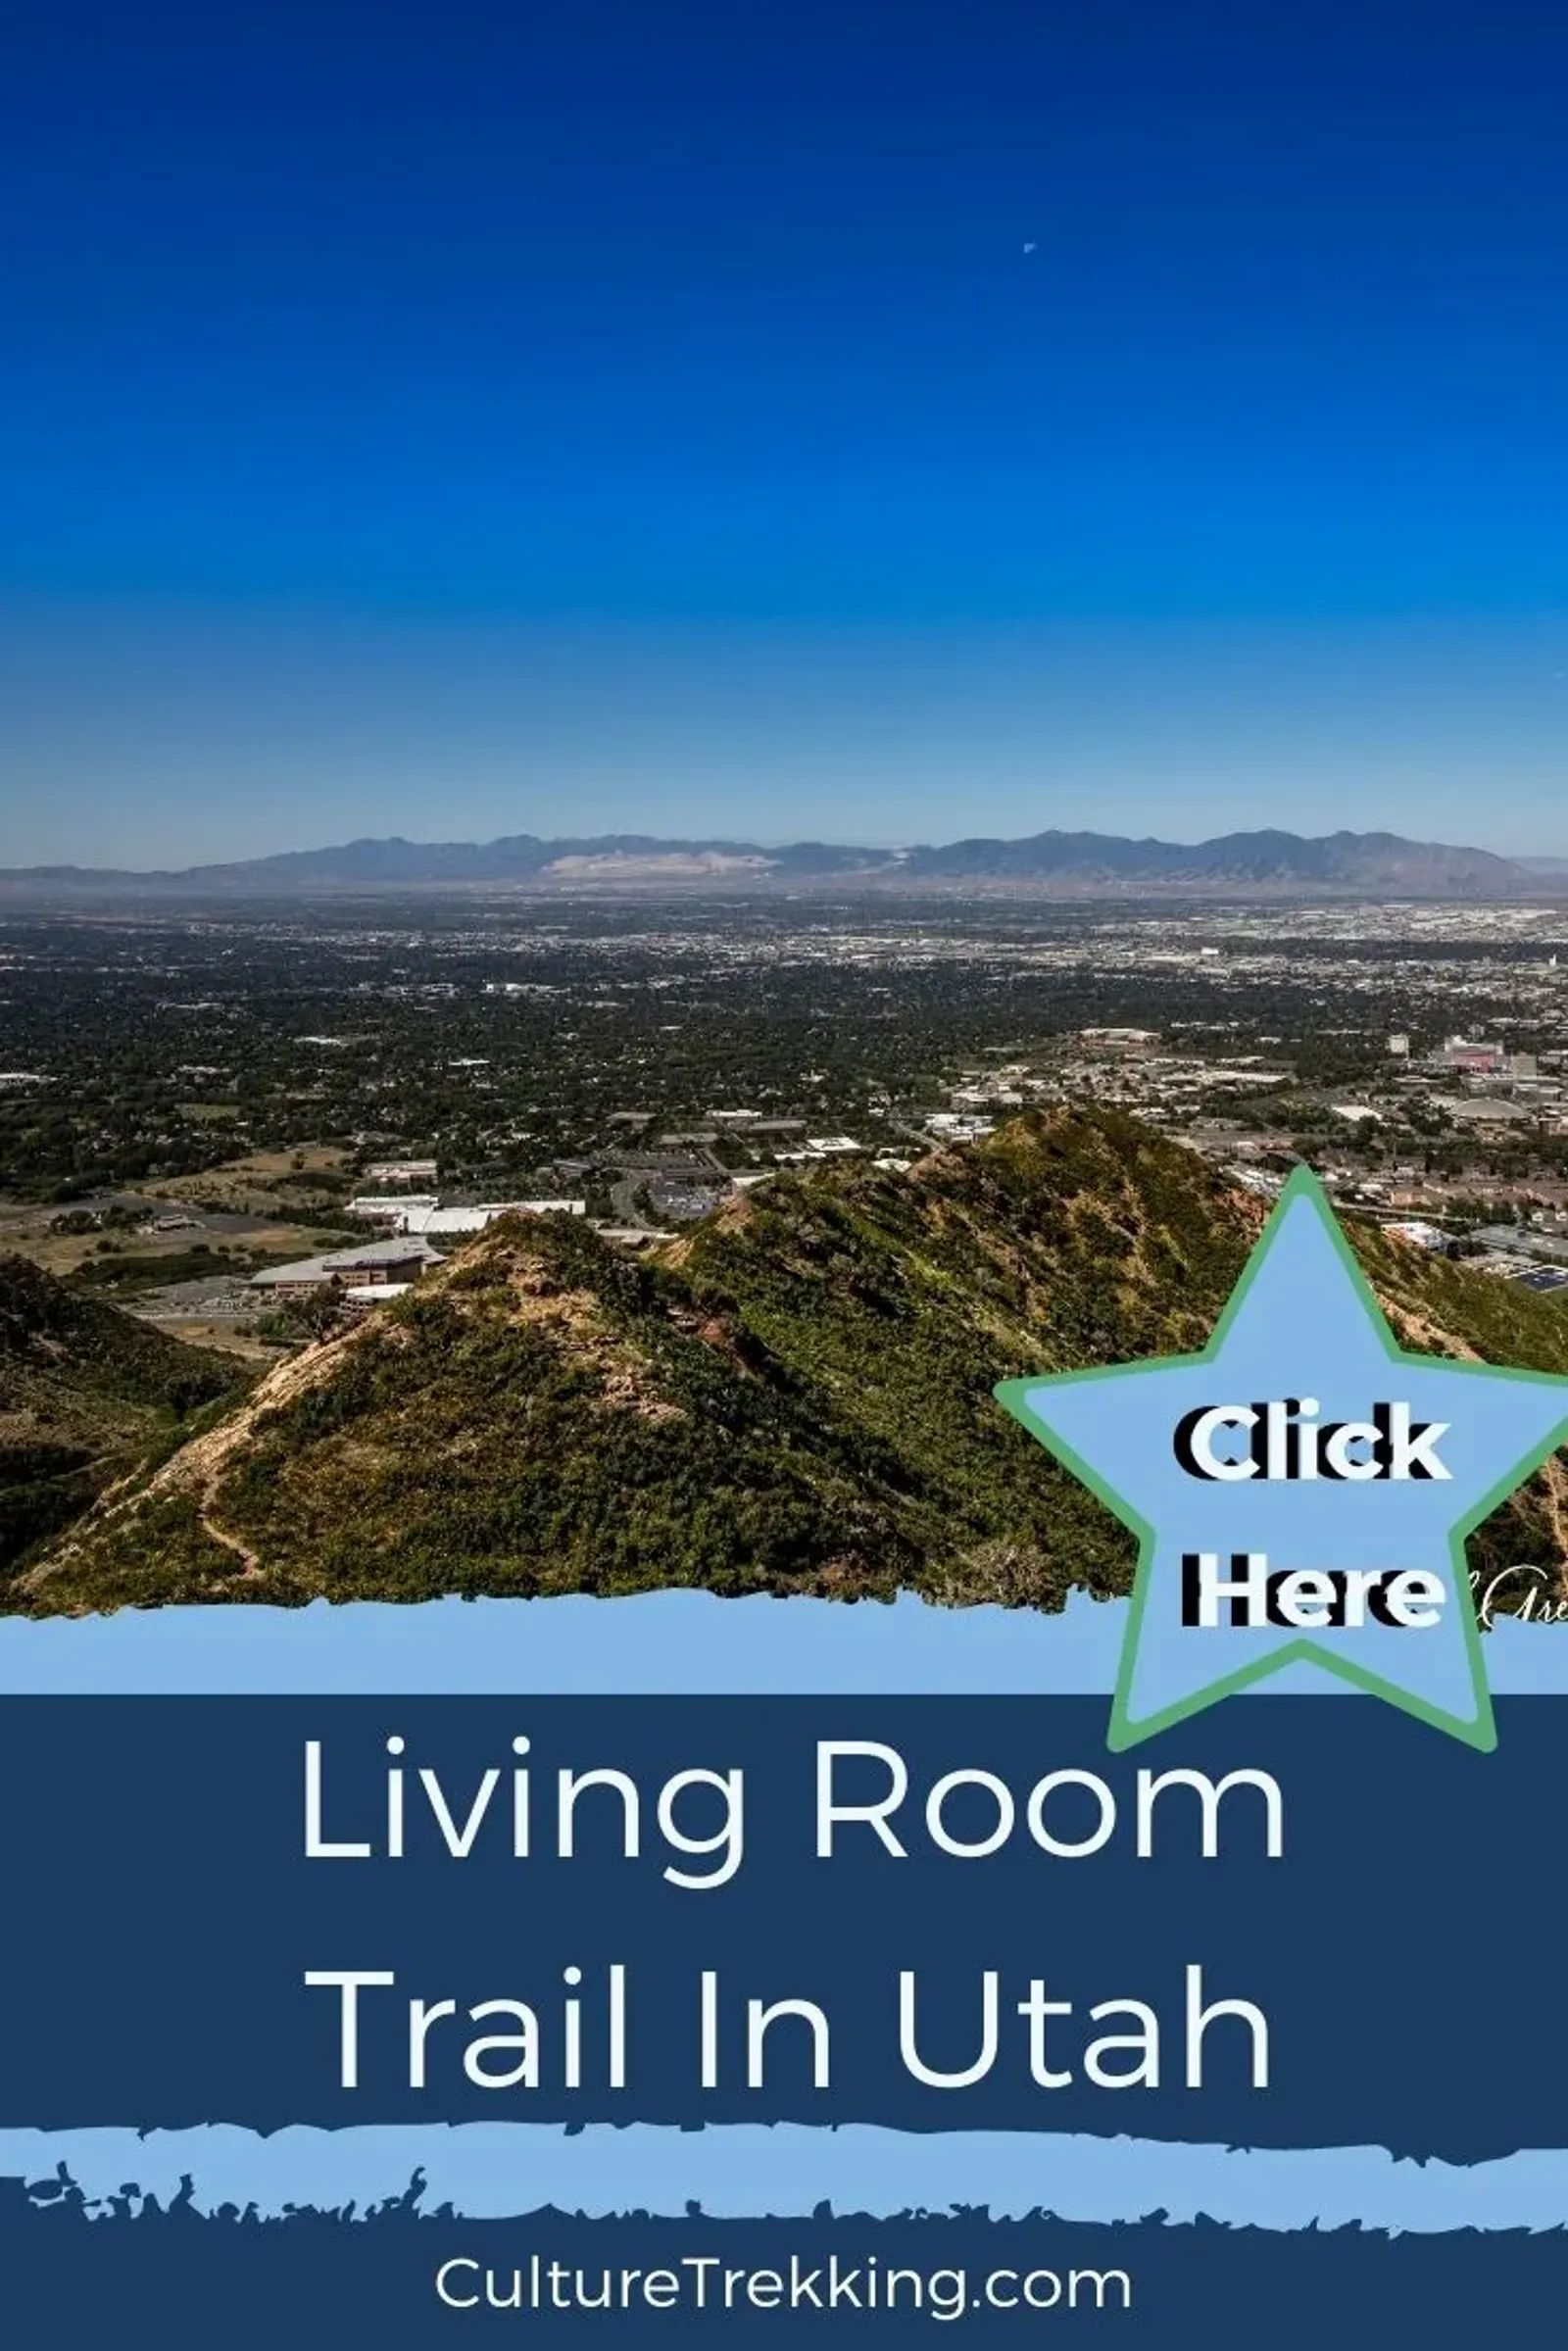 Living Room Hike In Salt Lake City How To Not Get Lost Utah Travel Culture Travel Hiking